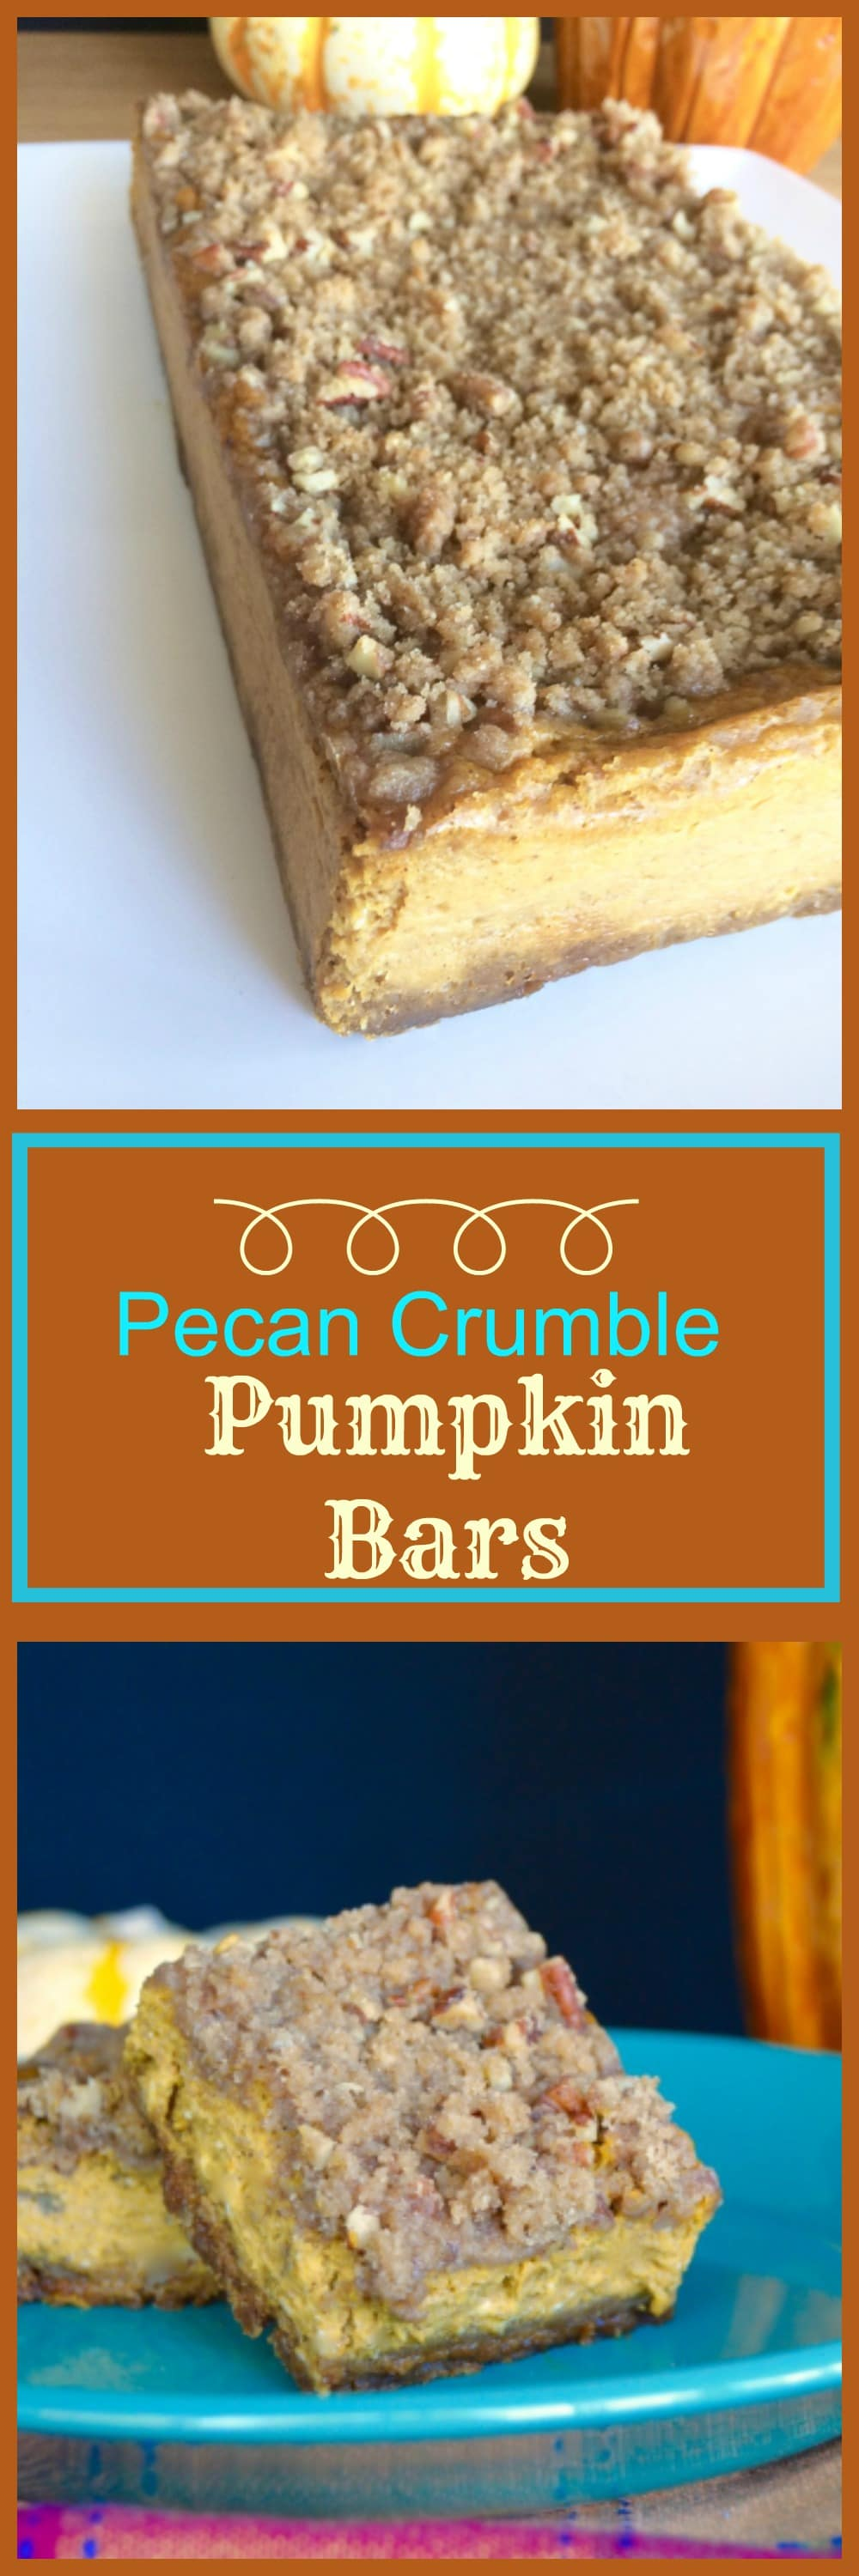 These Crunchy Pecan Crumble Pumpkin pie bars will tide you over until Thanksgiving and the traditional Pumpkin Pie. Easy to make, they have great texture(creamy and crunchy) and are very satisfying!